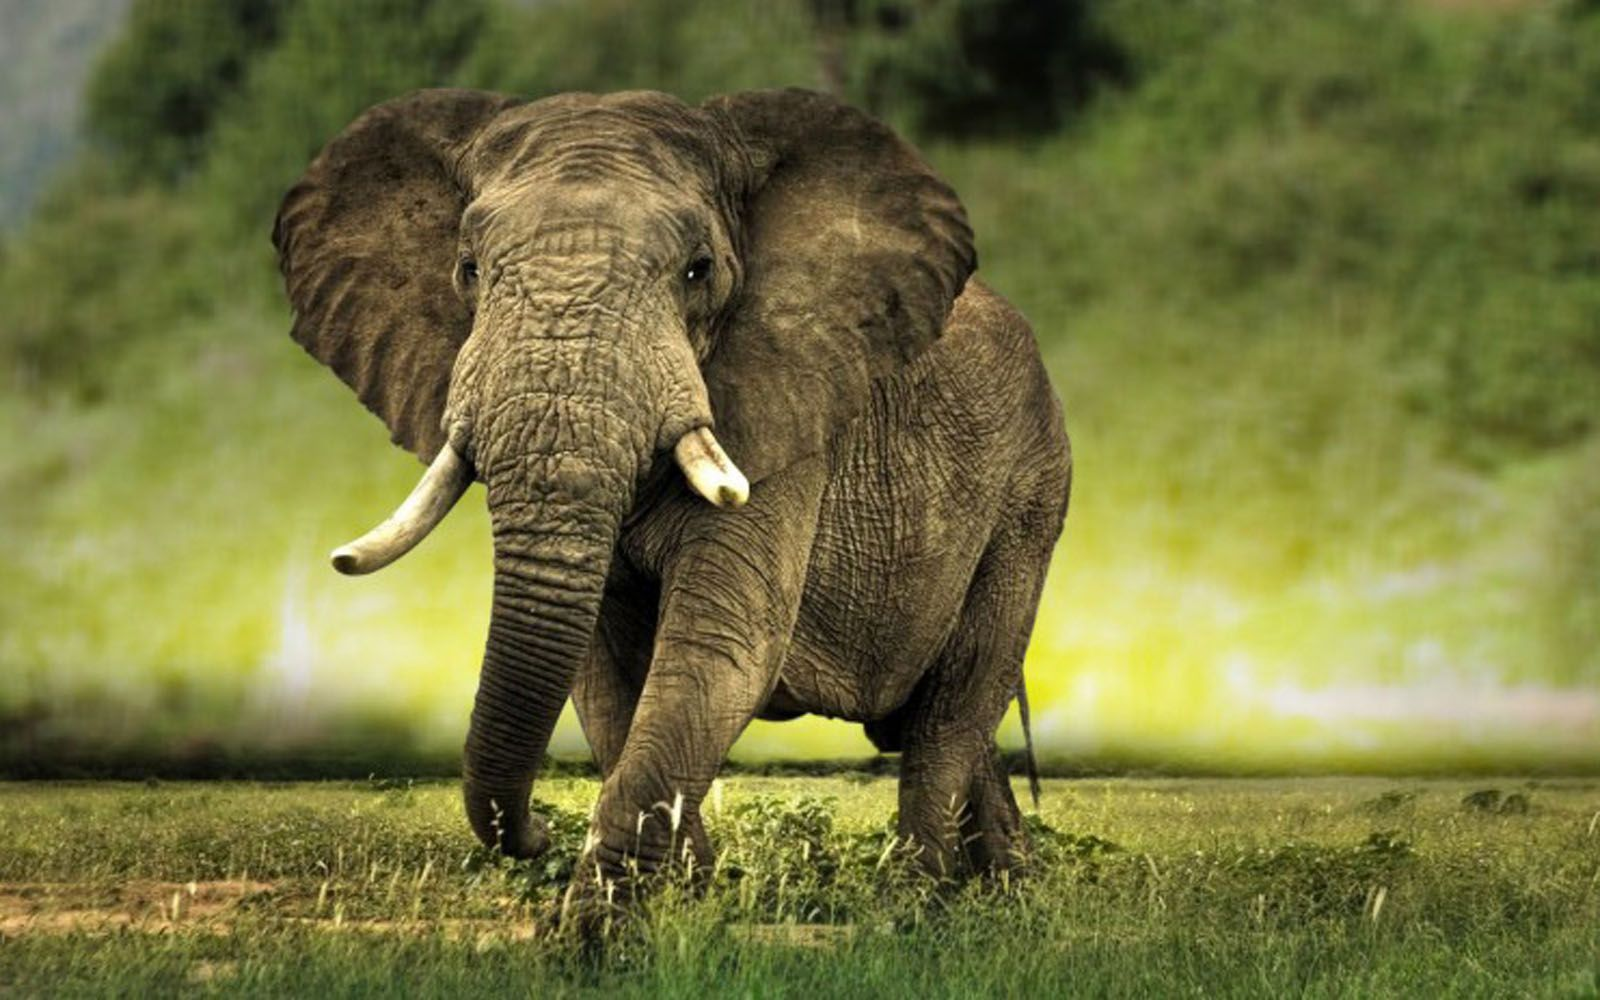 Baby Elephant Wallpapers Fondos de pantalla 1600x1000